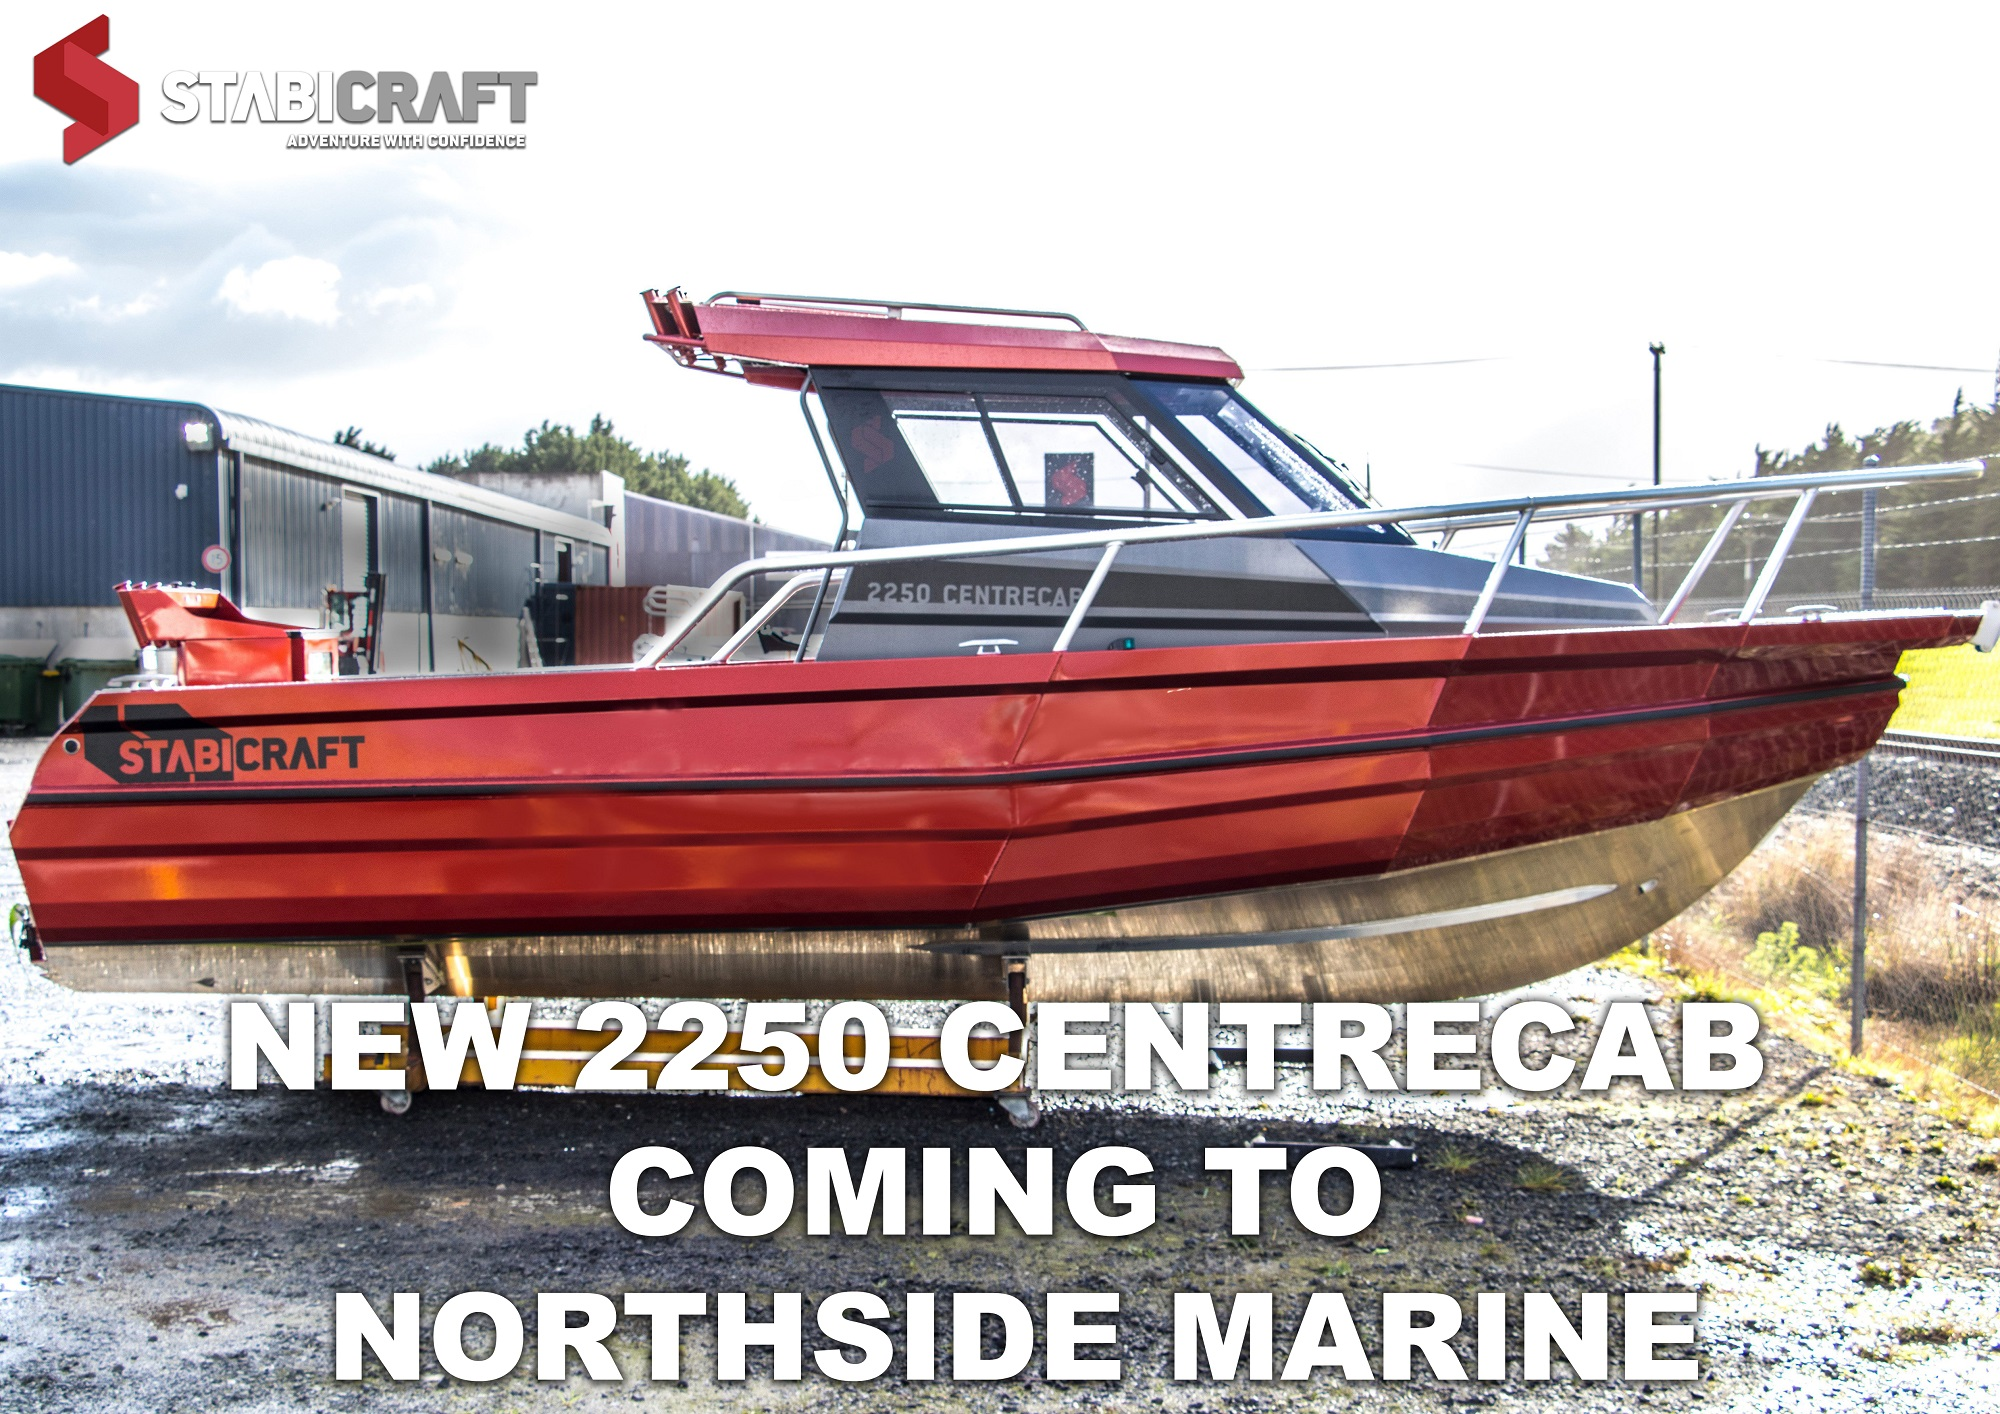 News | Northside Marine - Your Boating Partners for Life